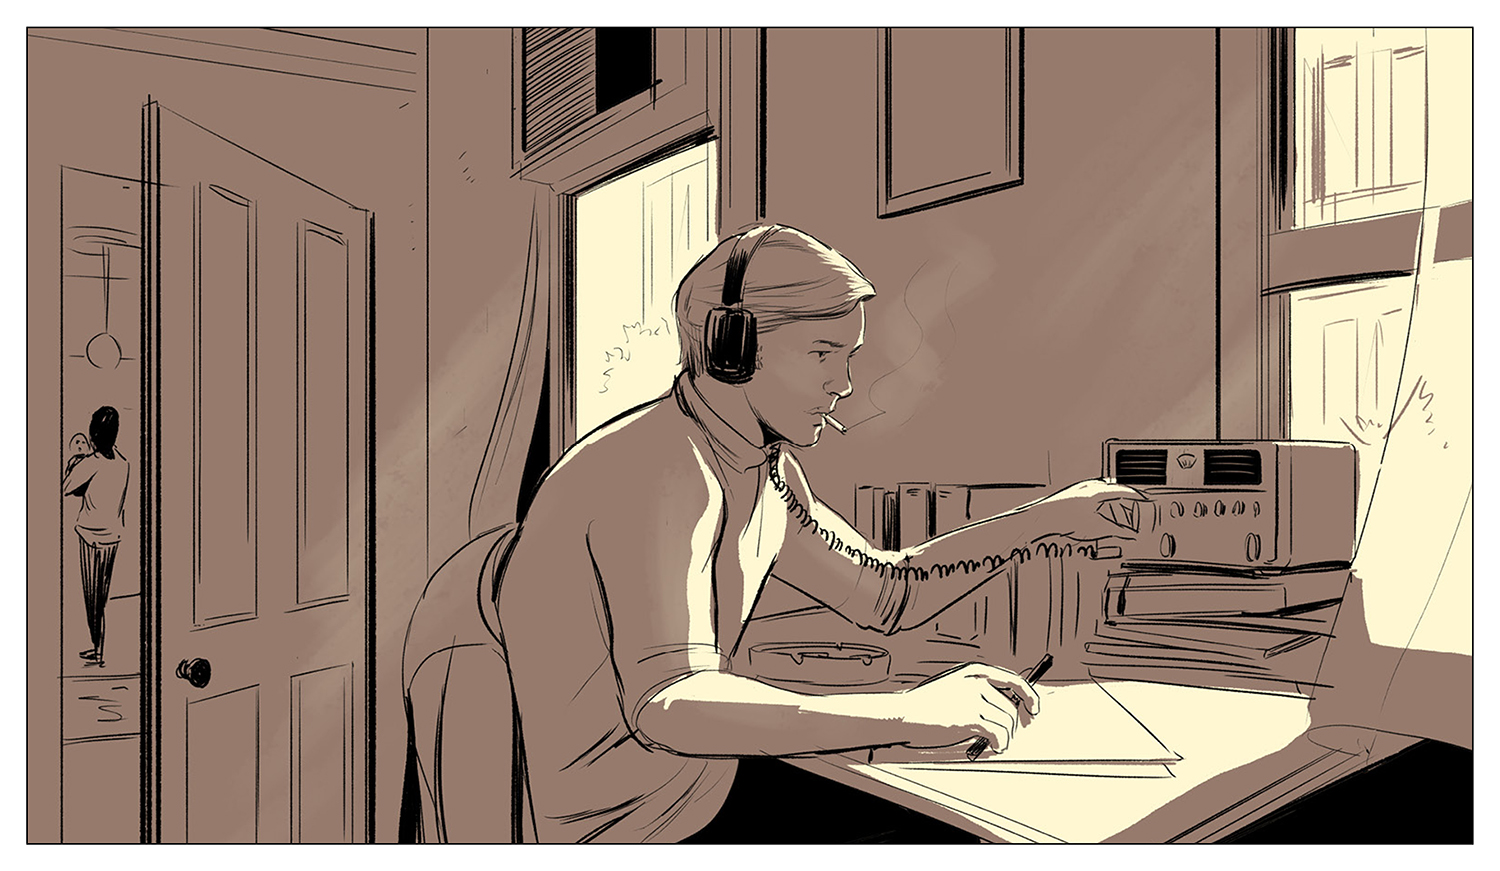 Barsky listens to his shortwave radio, running his spy operation out of half of a typical modest New York apartment while his girlfriend and baby live in the other half of the space.